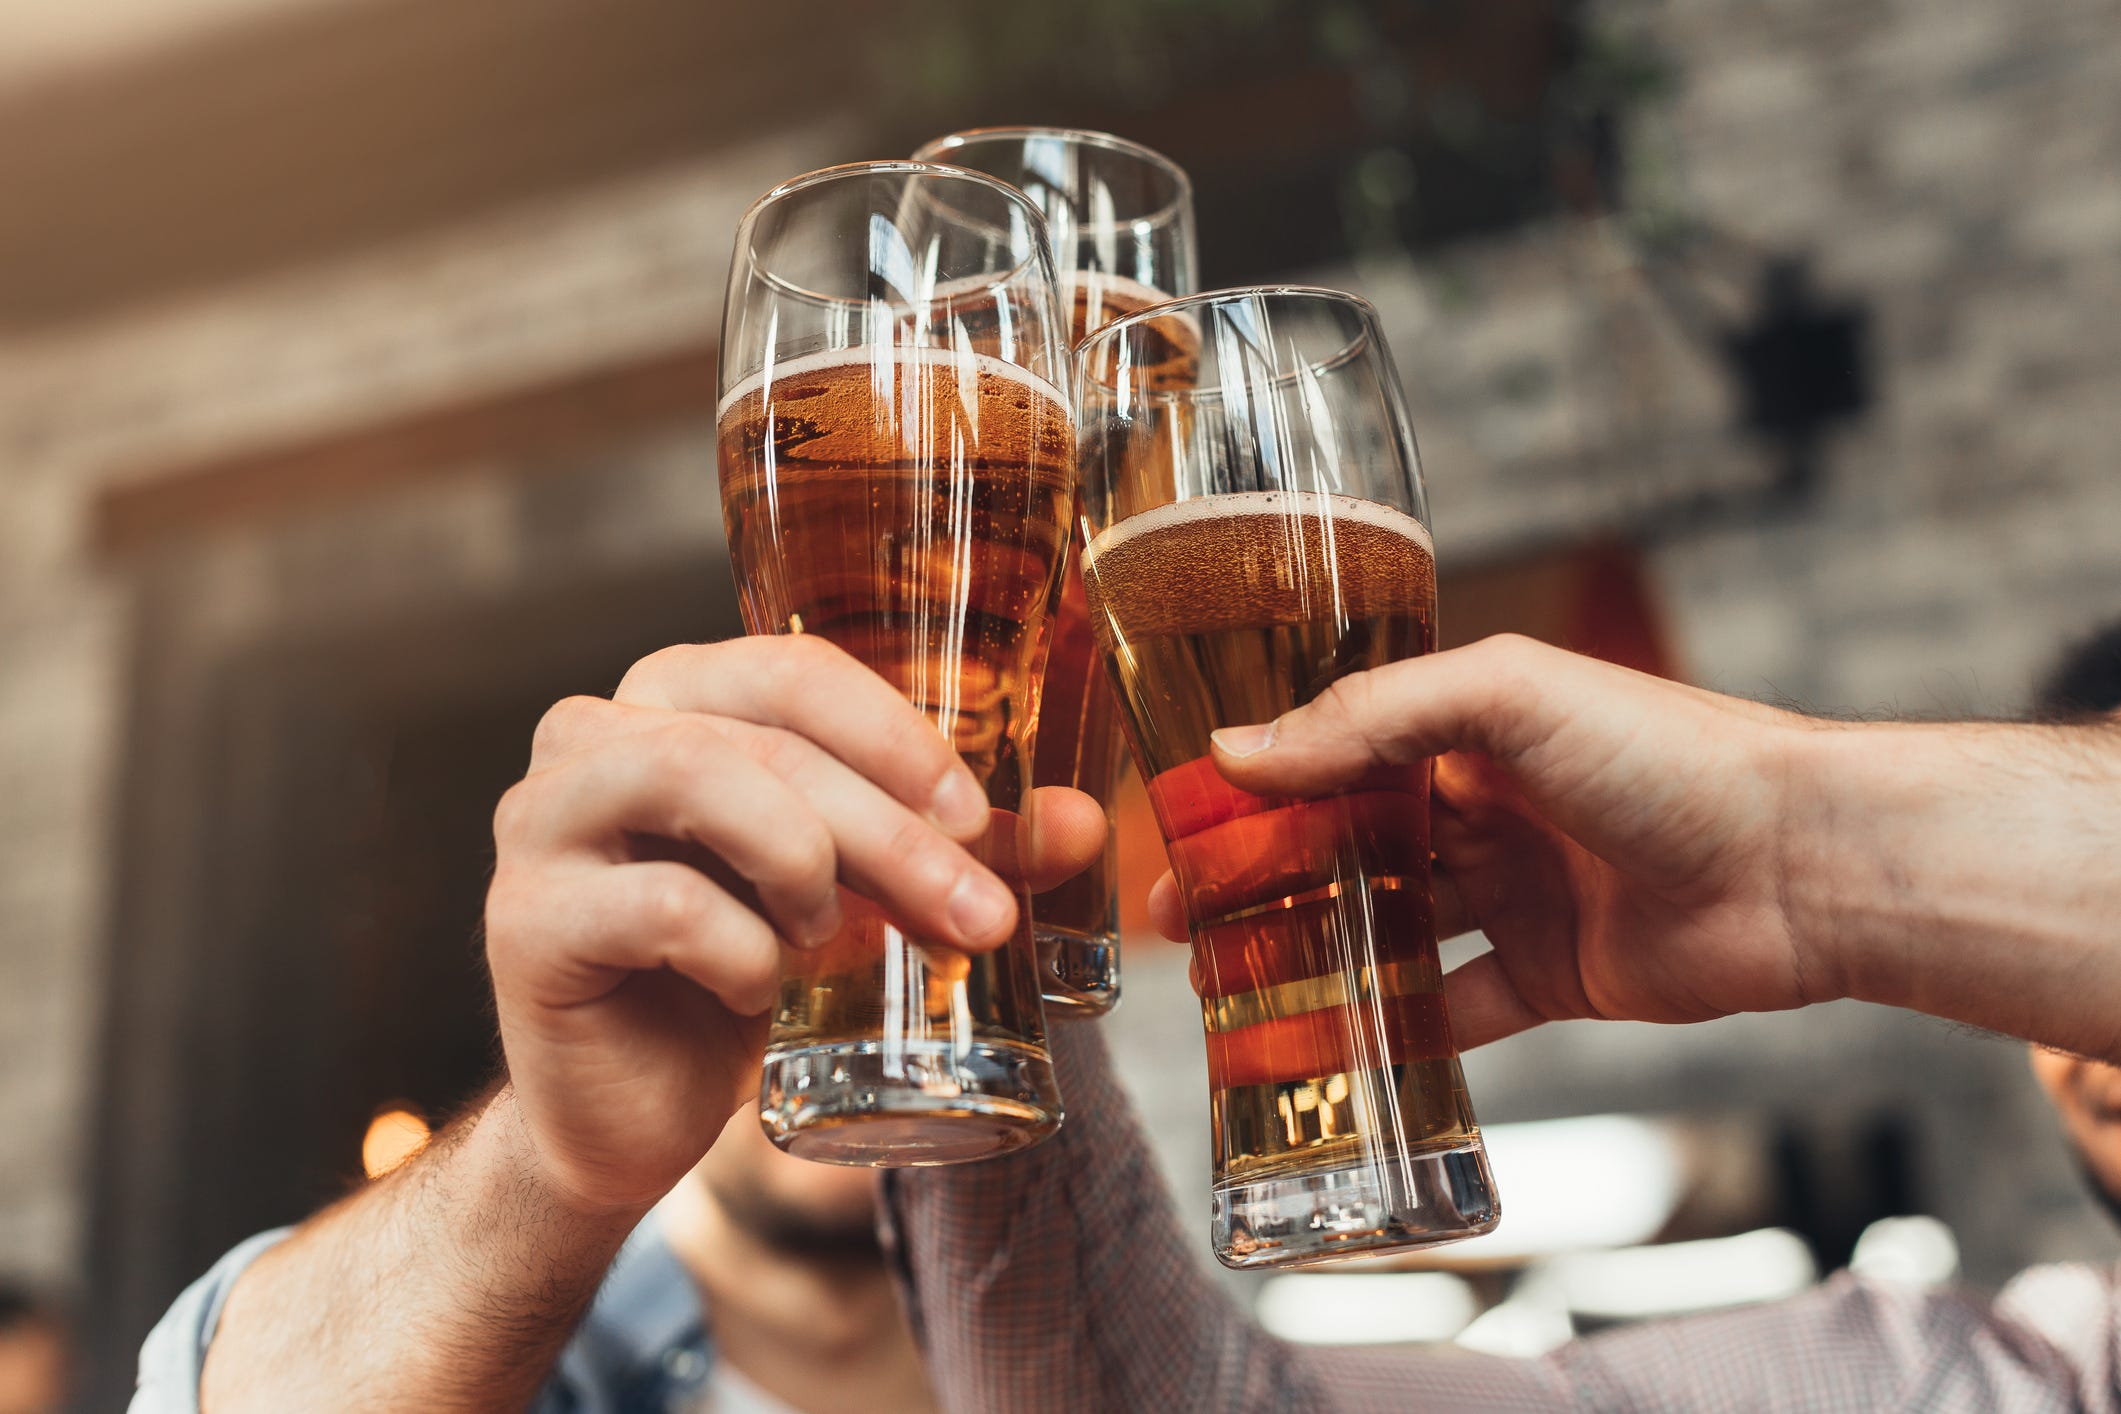 She didn t drink, but her urine was full of alcohol. Turns out, her bladder was its own brewery.